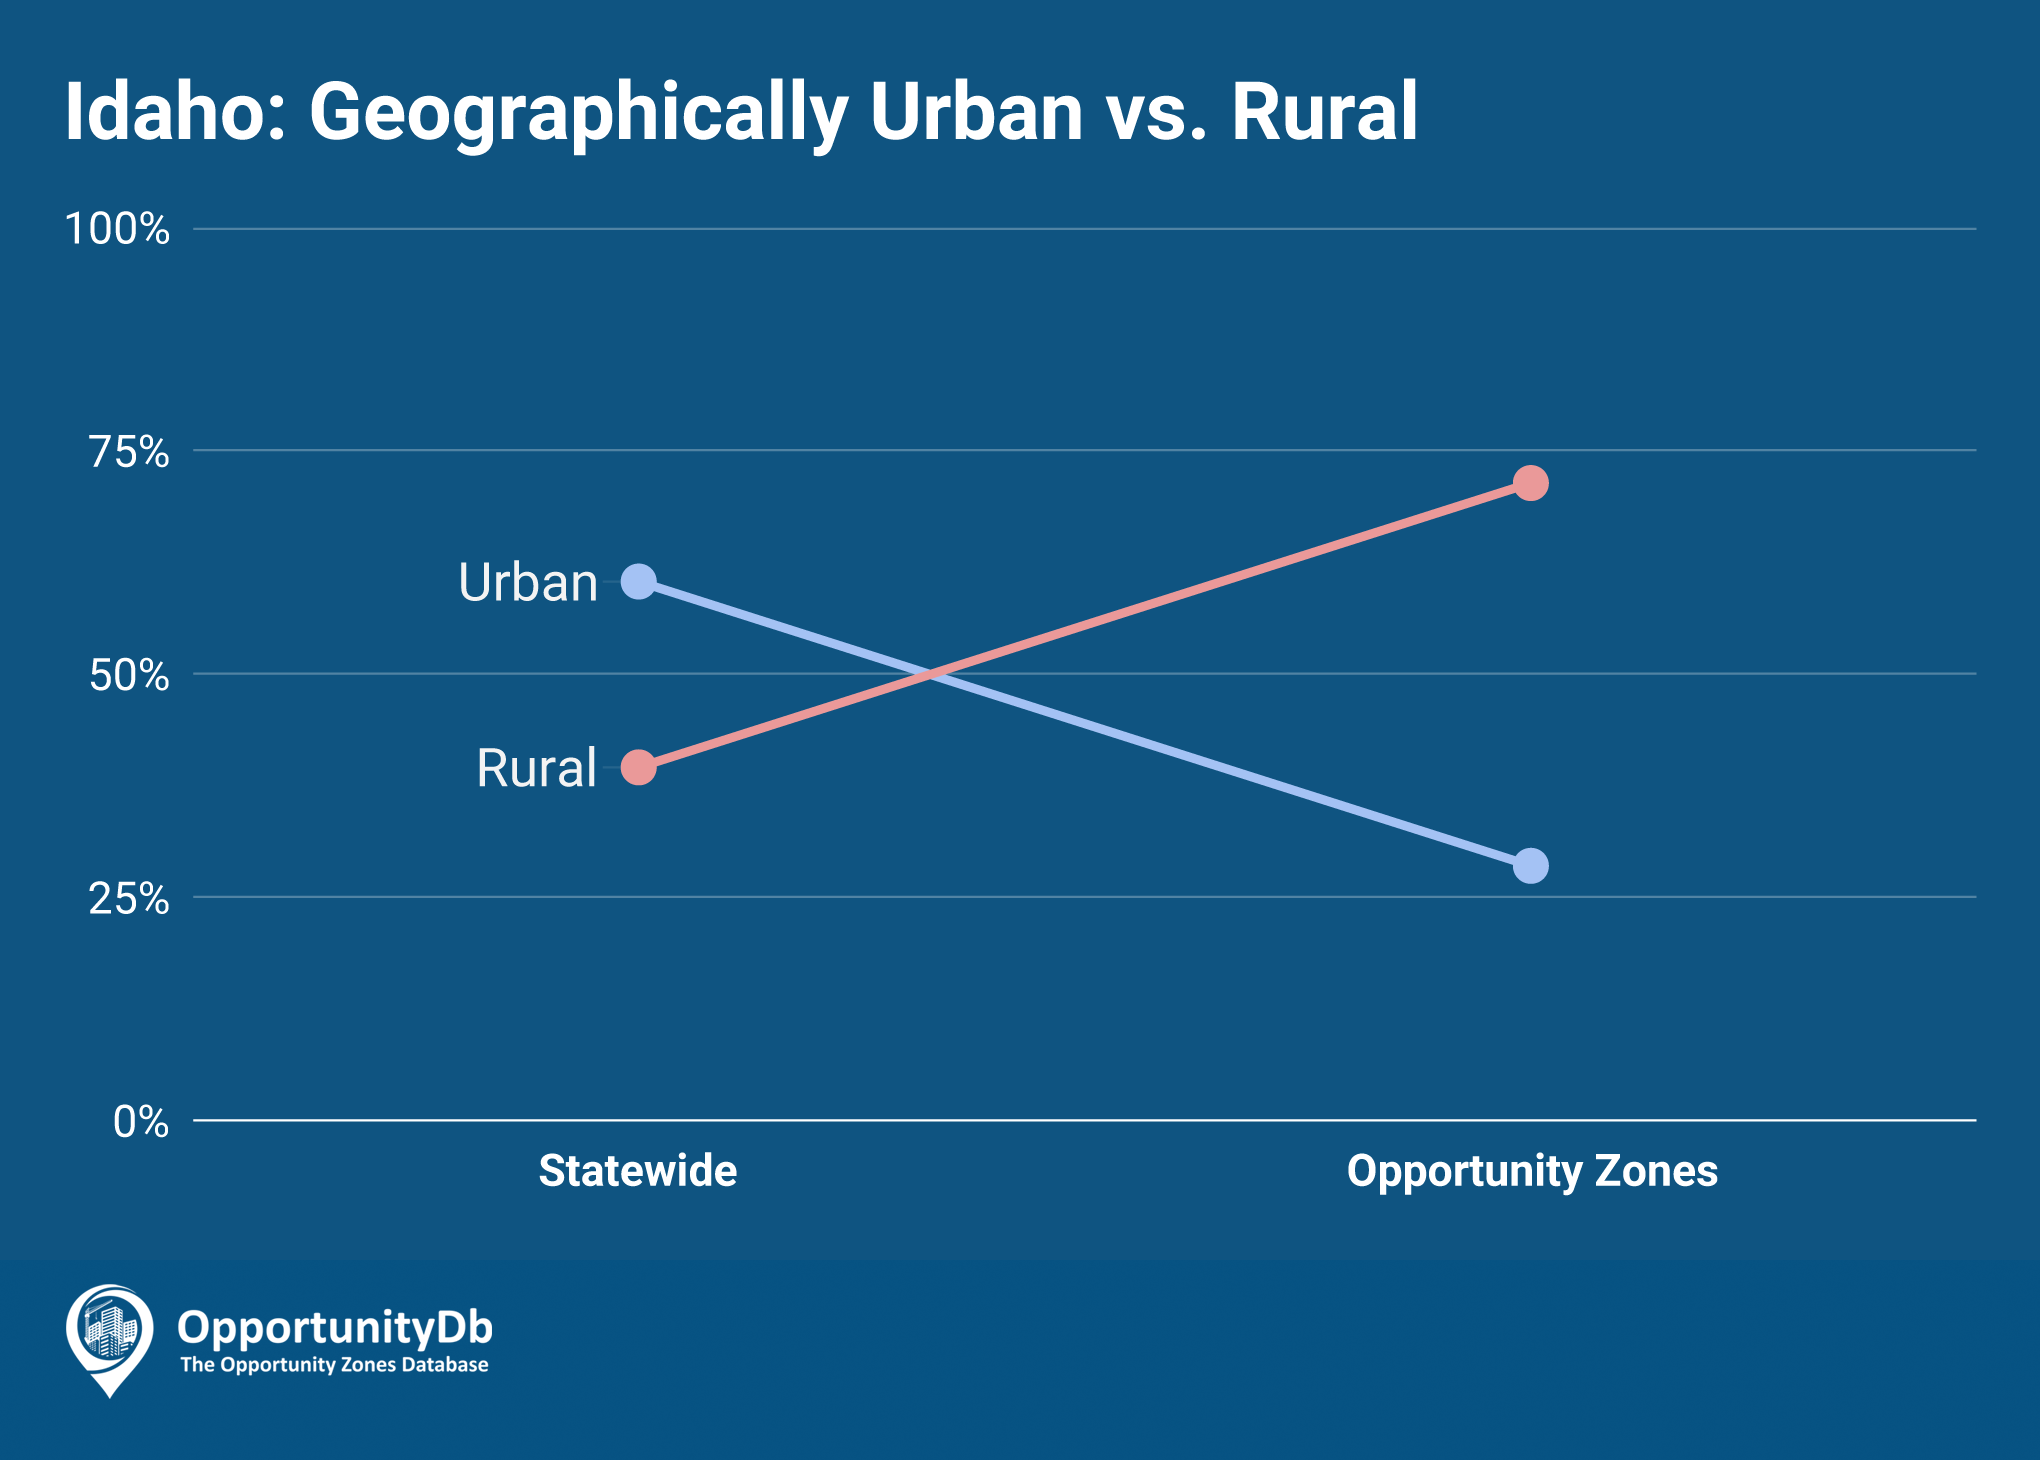 Urban vs. Rural in Idaho Opportunity Zones